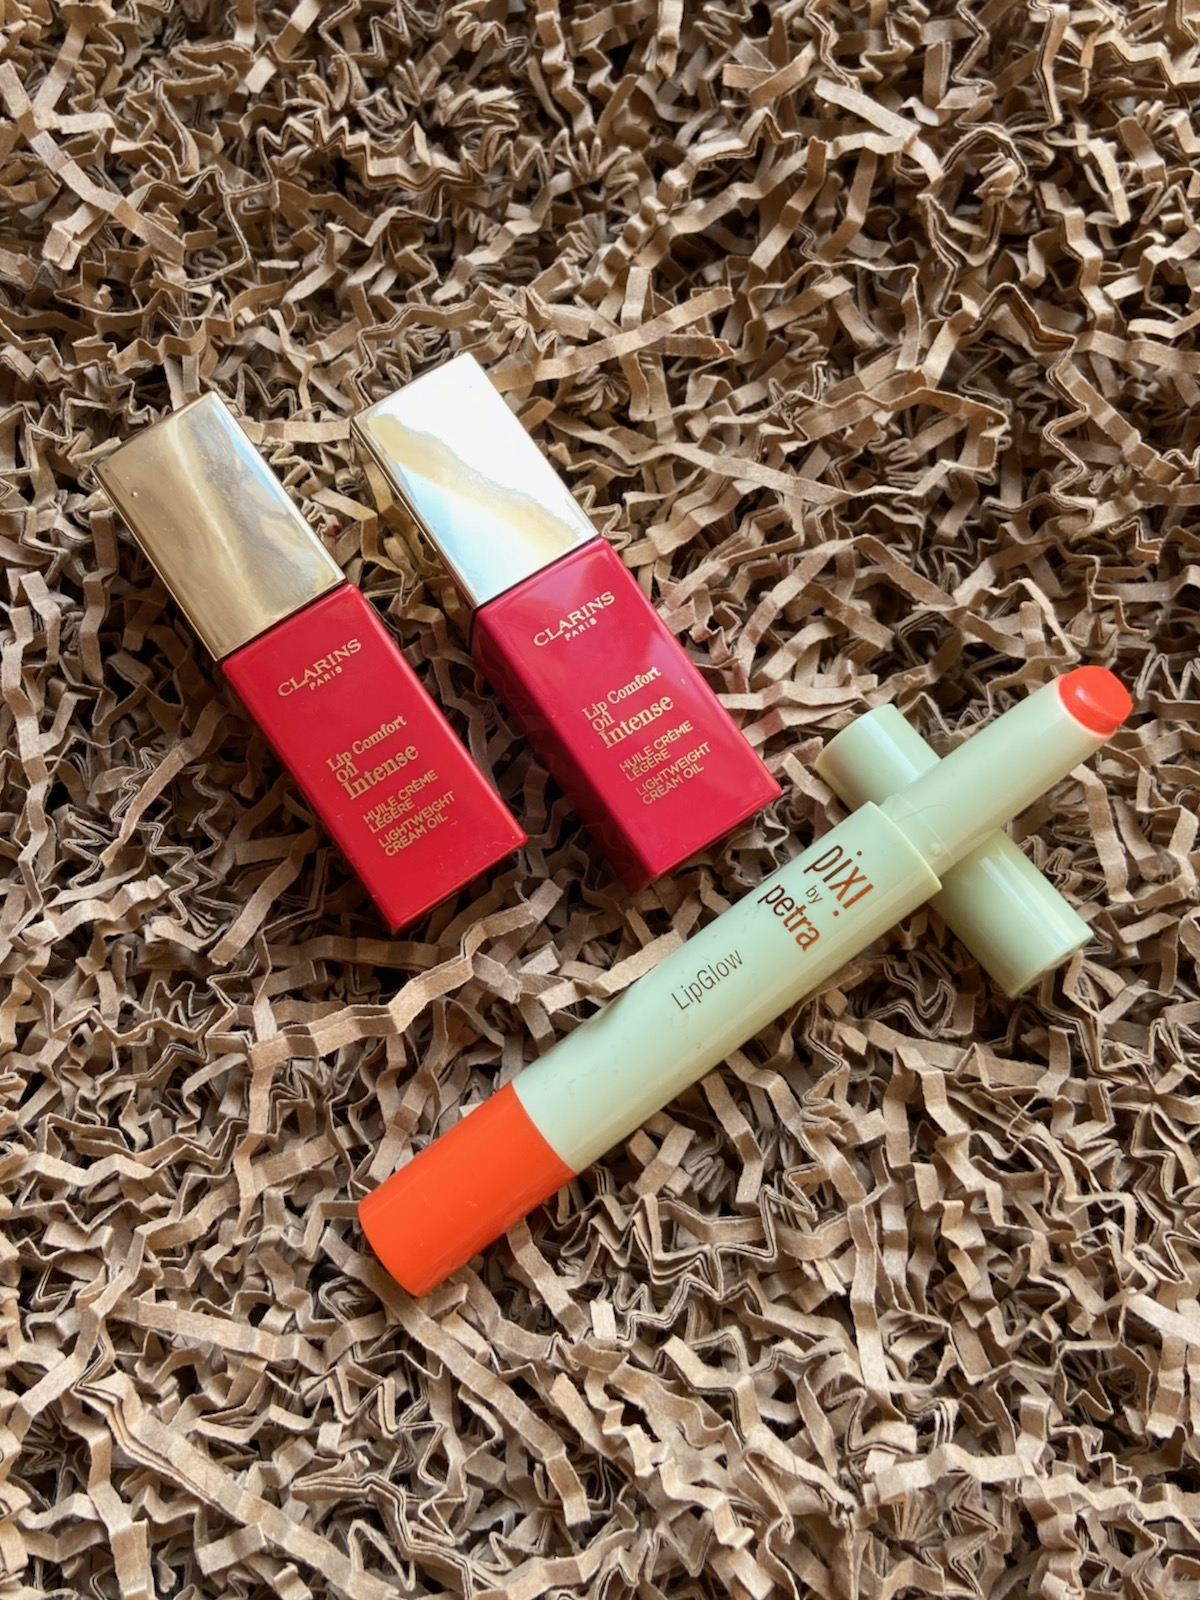 Clarins Lip Comfort Oil Intense Pixi Lip Glow